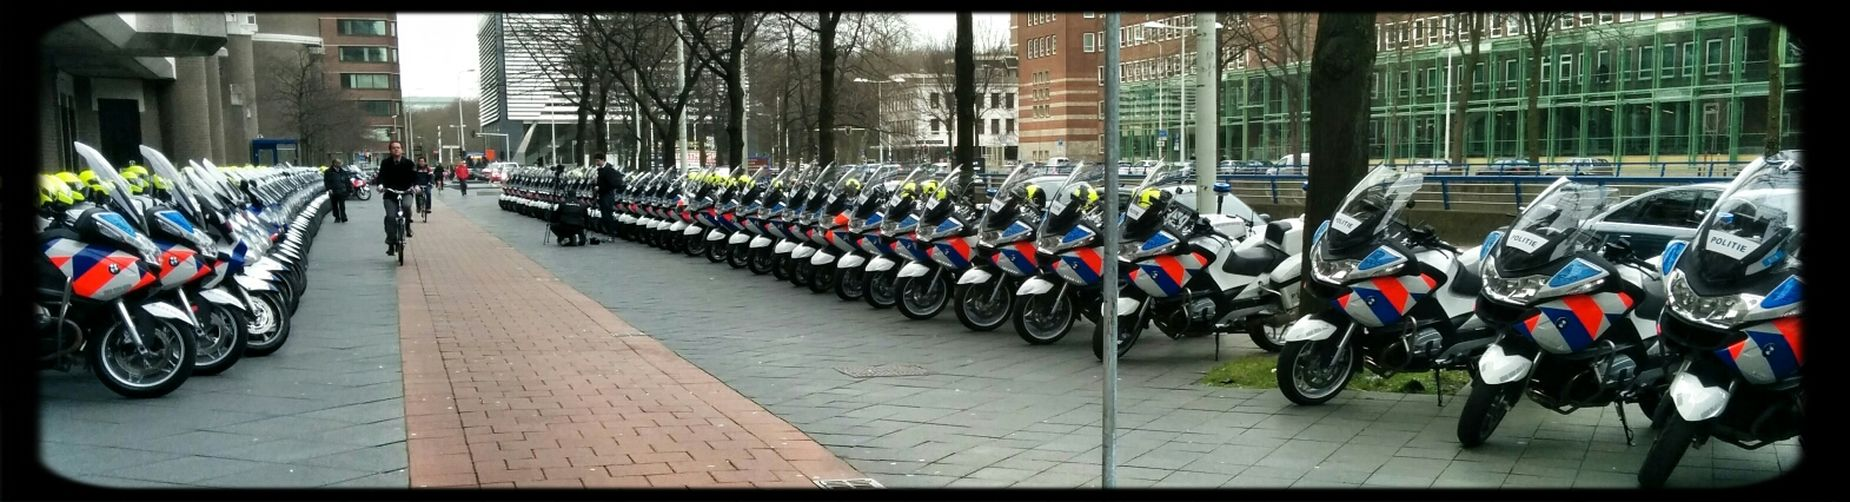 Police motorcycles in preparation for the Nuclear Security Summit 2014 Thehague  Police